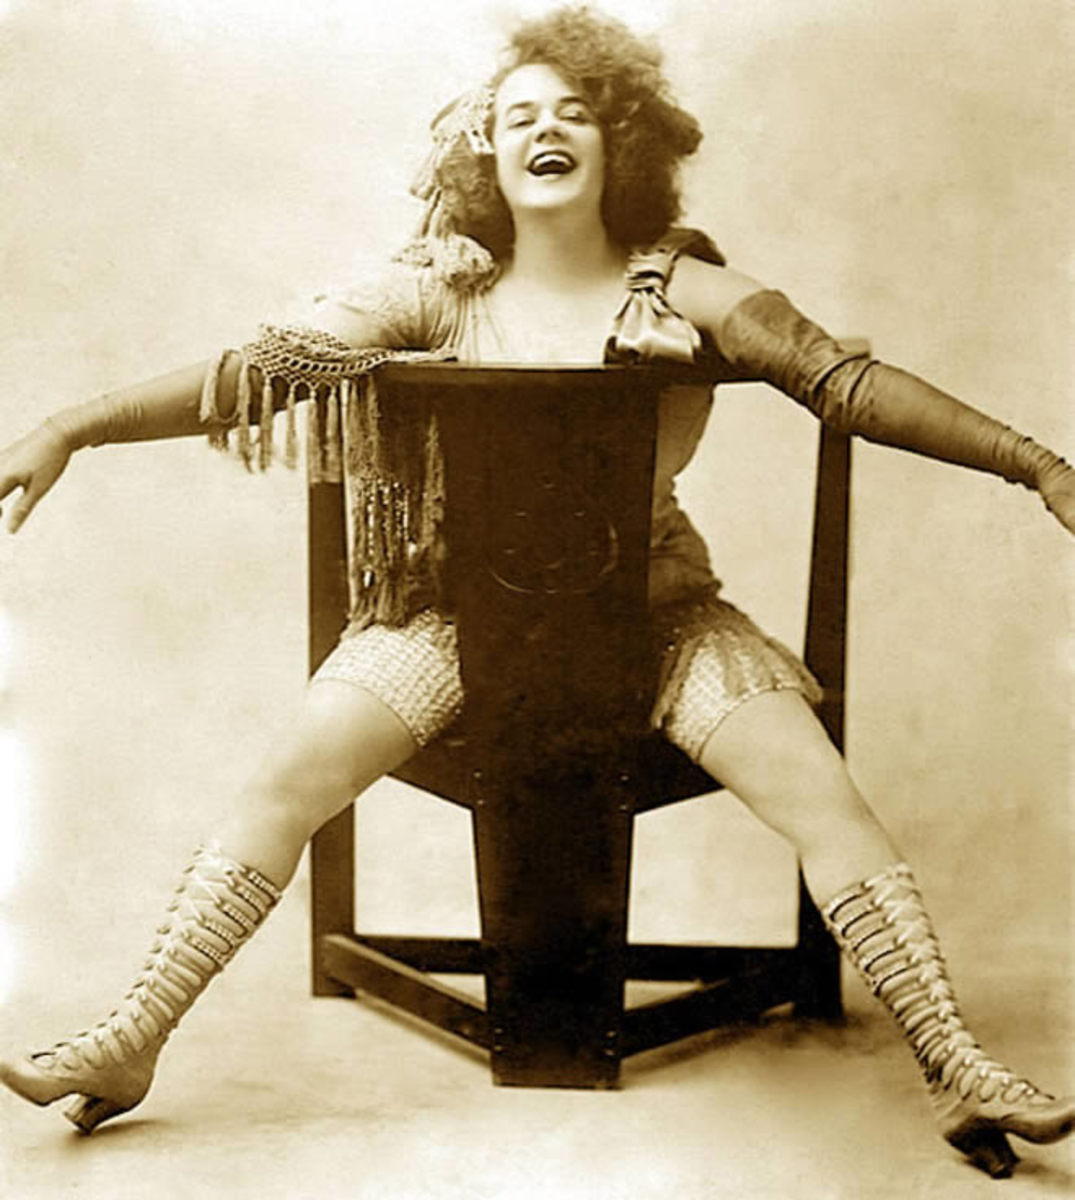 6 Women of Vaudeville